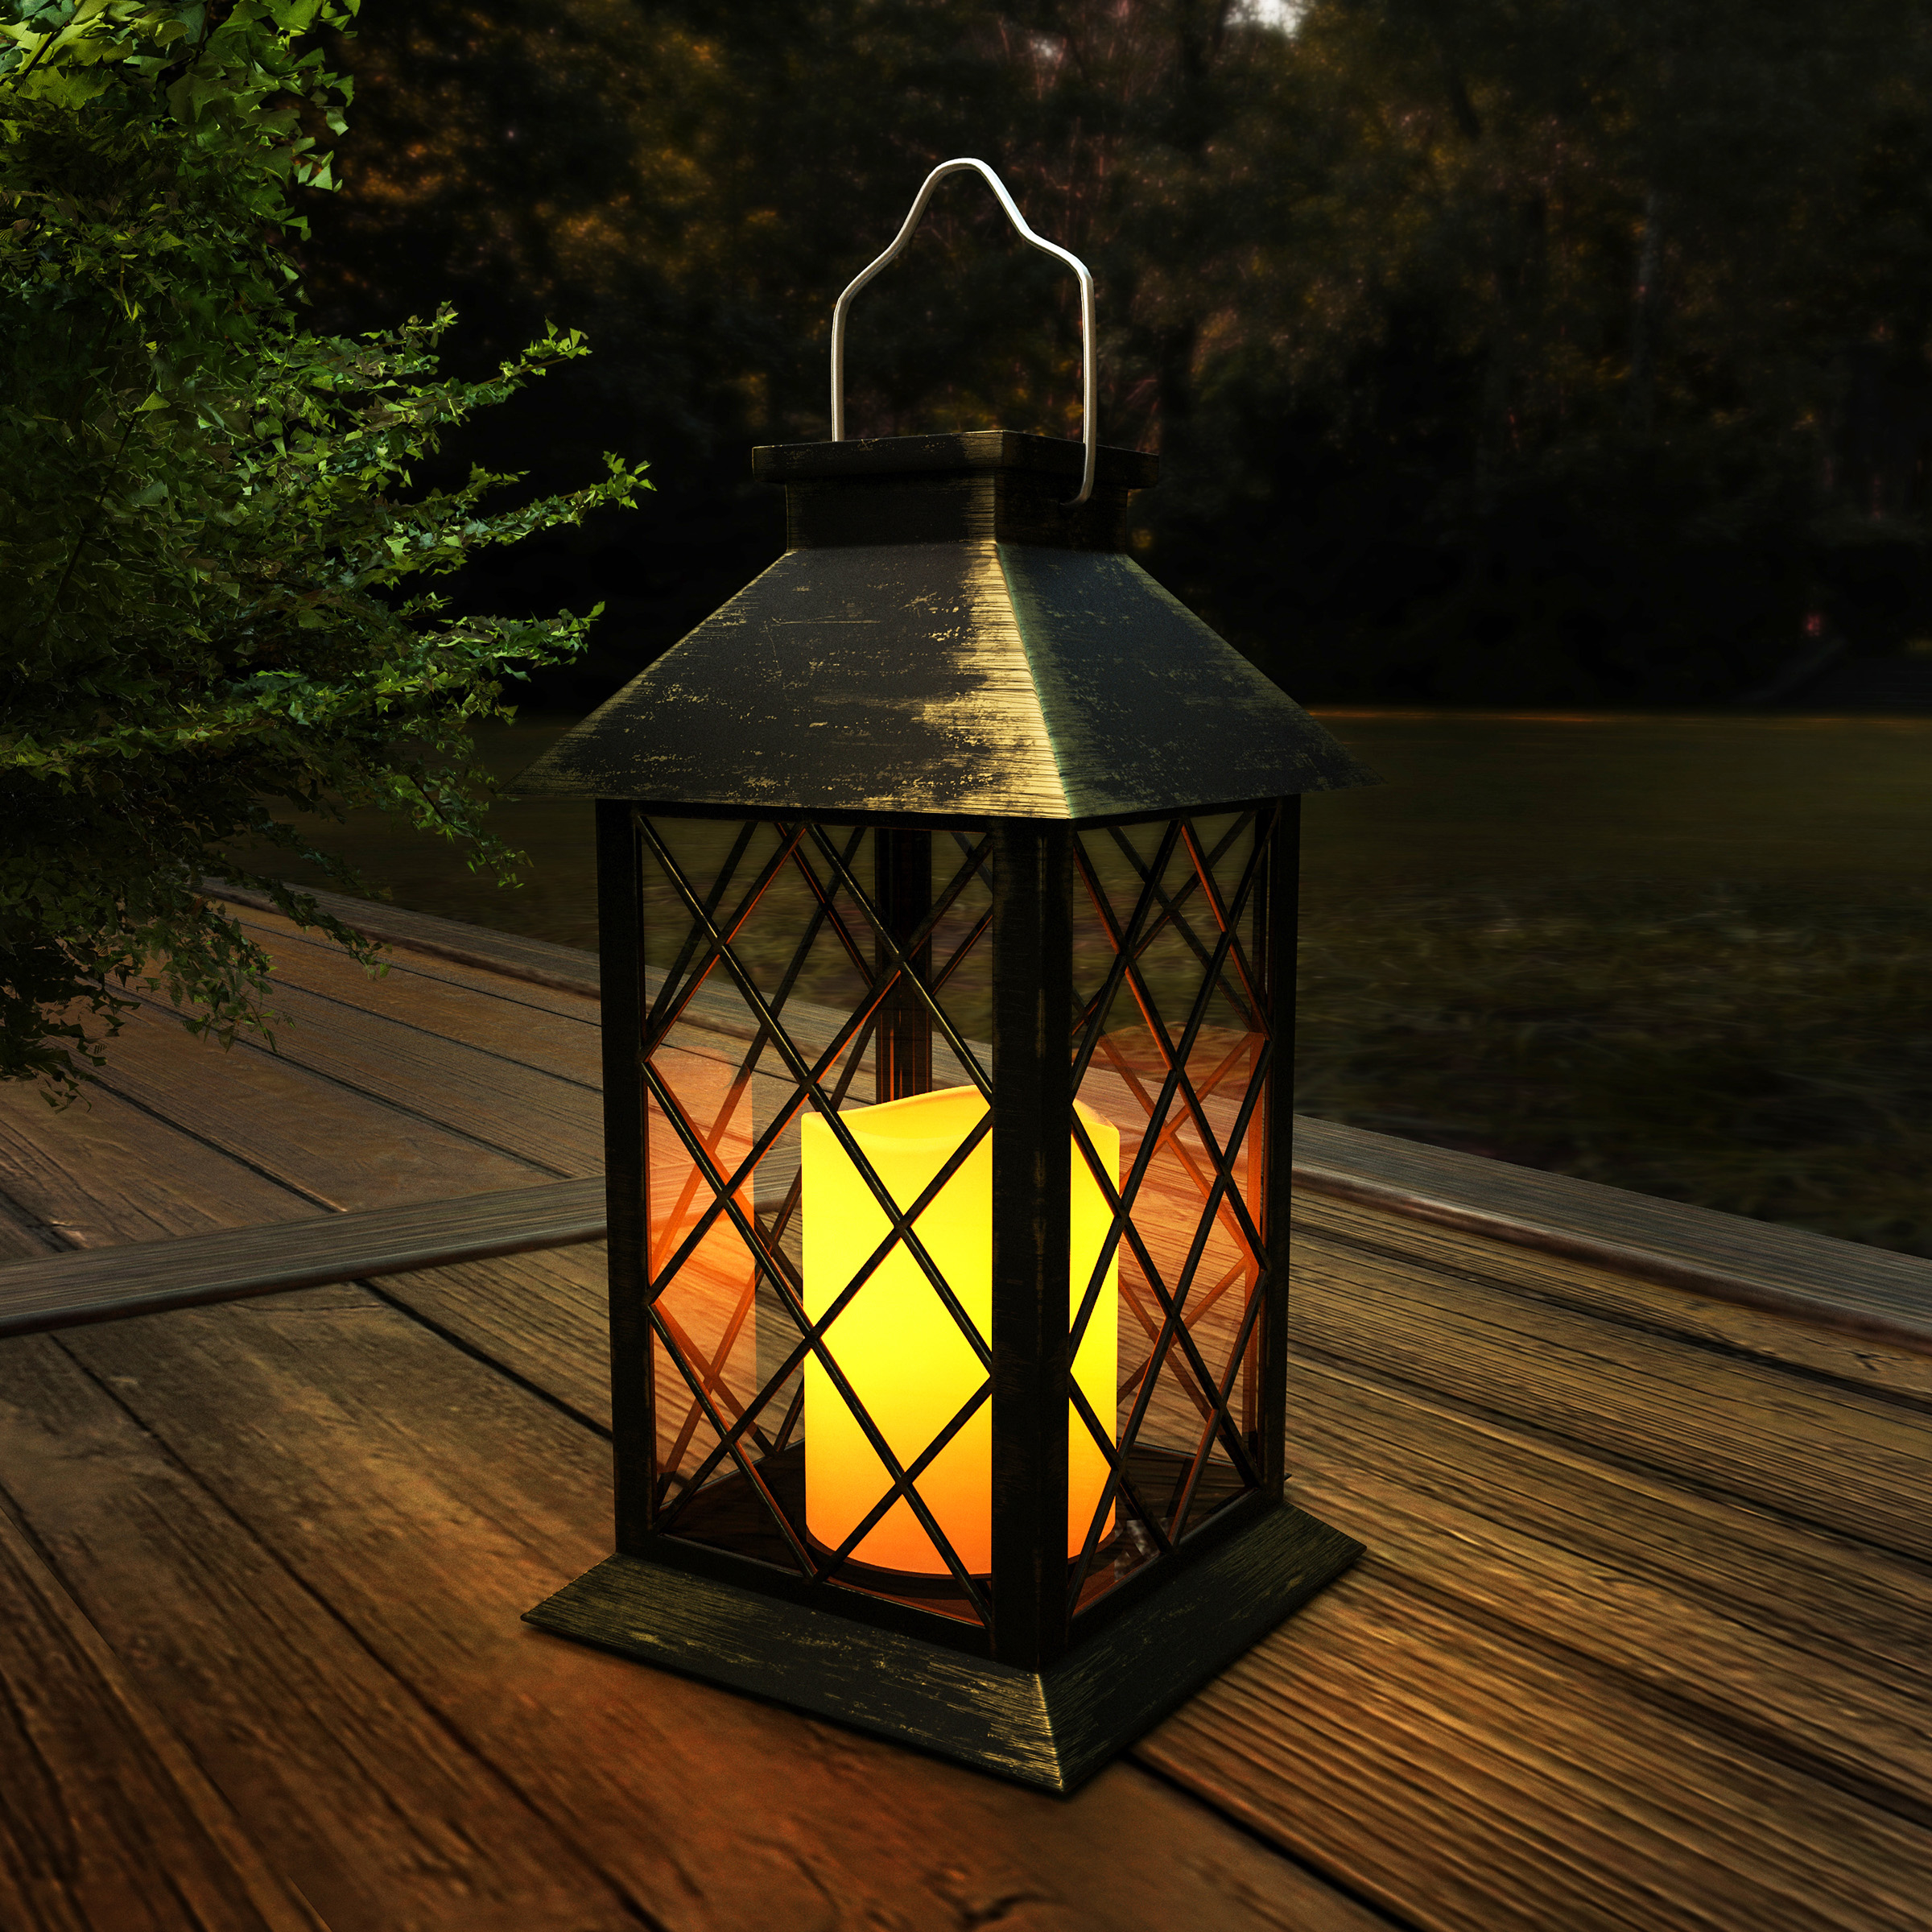 Solar Powered Lantern- Hanging or Tabletop Water Resistant LED Pillar Candle Lamp